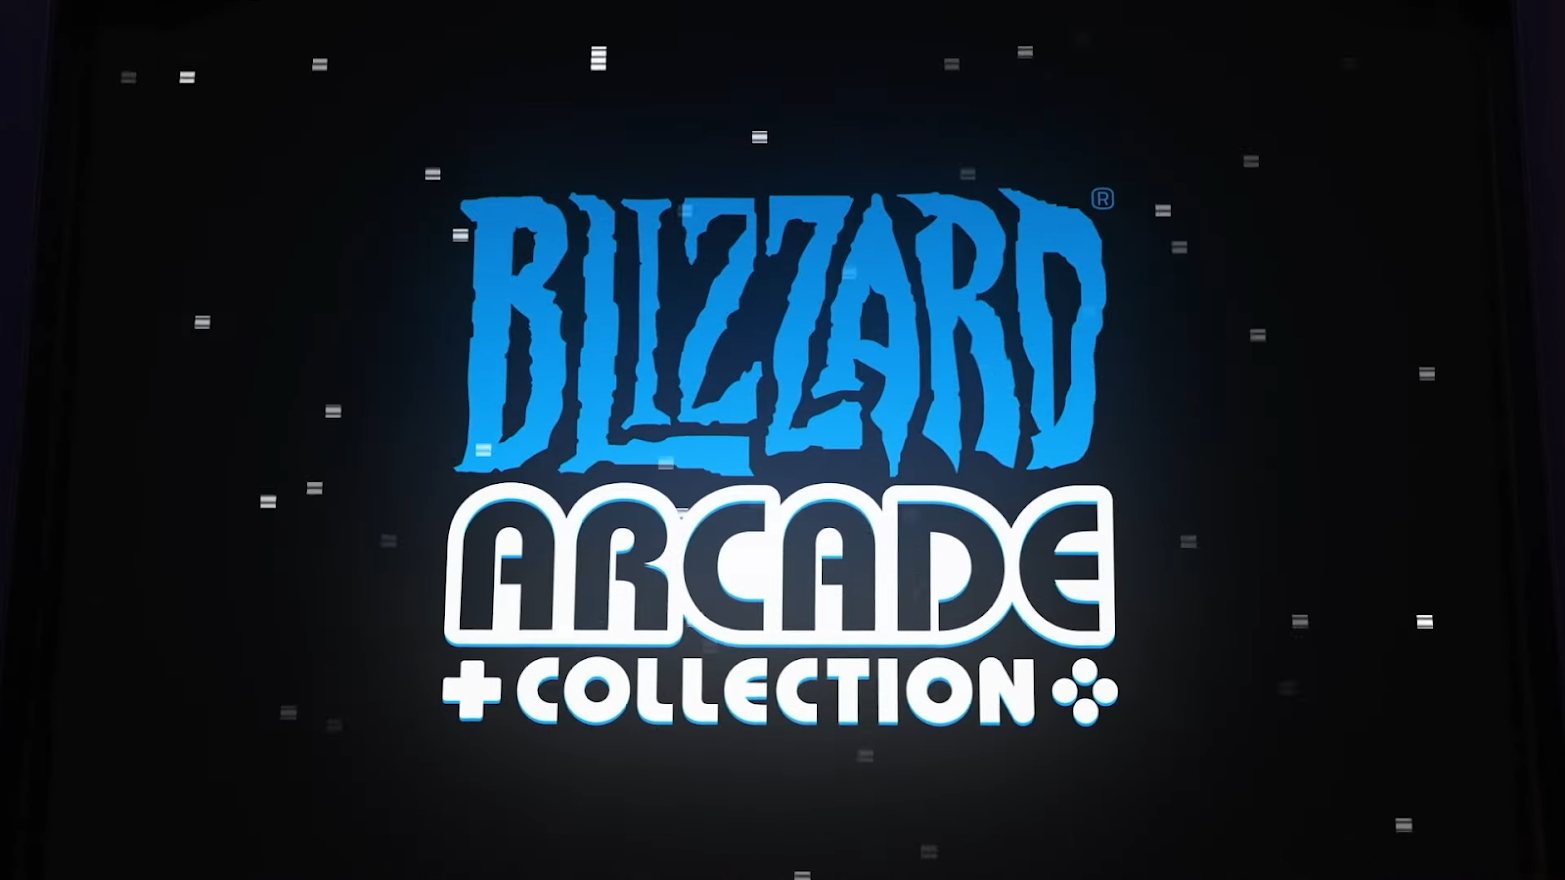 Blizzard Arcade Collection announced at Blizzcon 2021